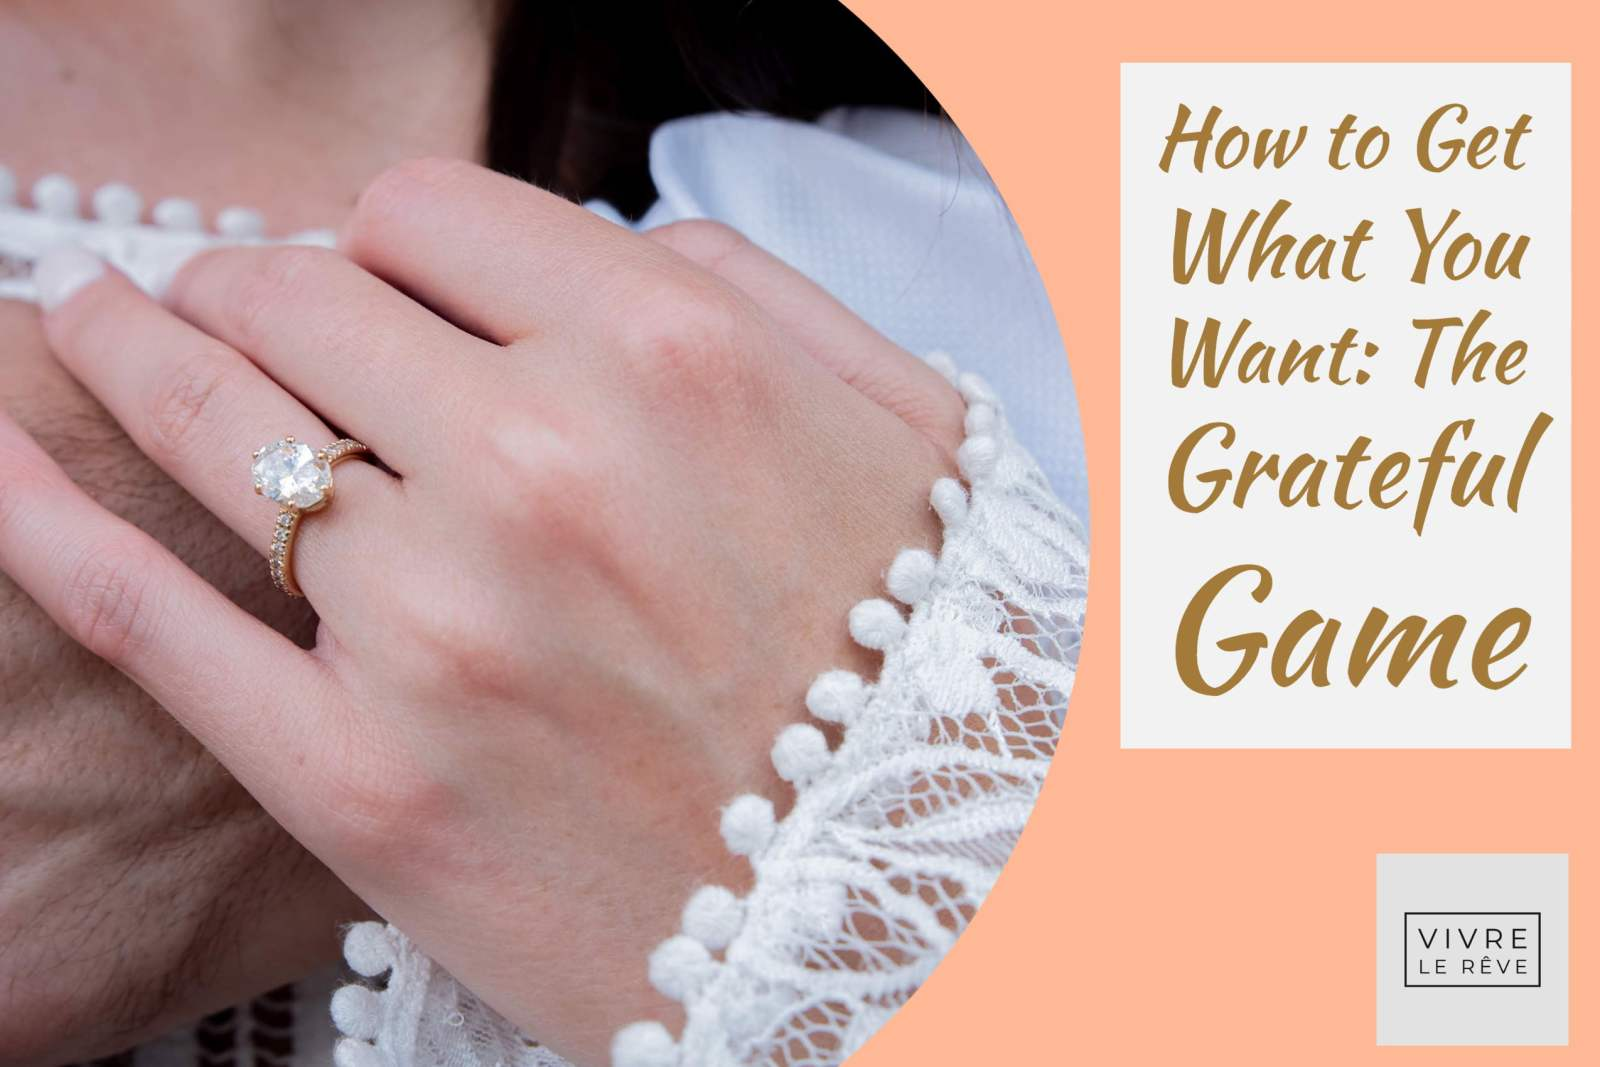 How to Get What You Want: The Grateful Game